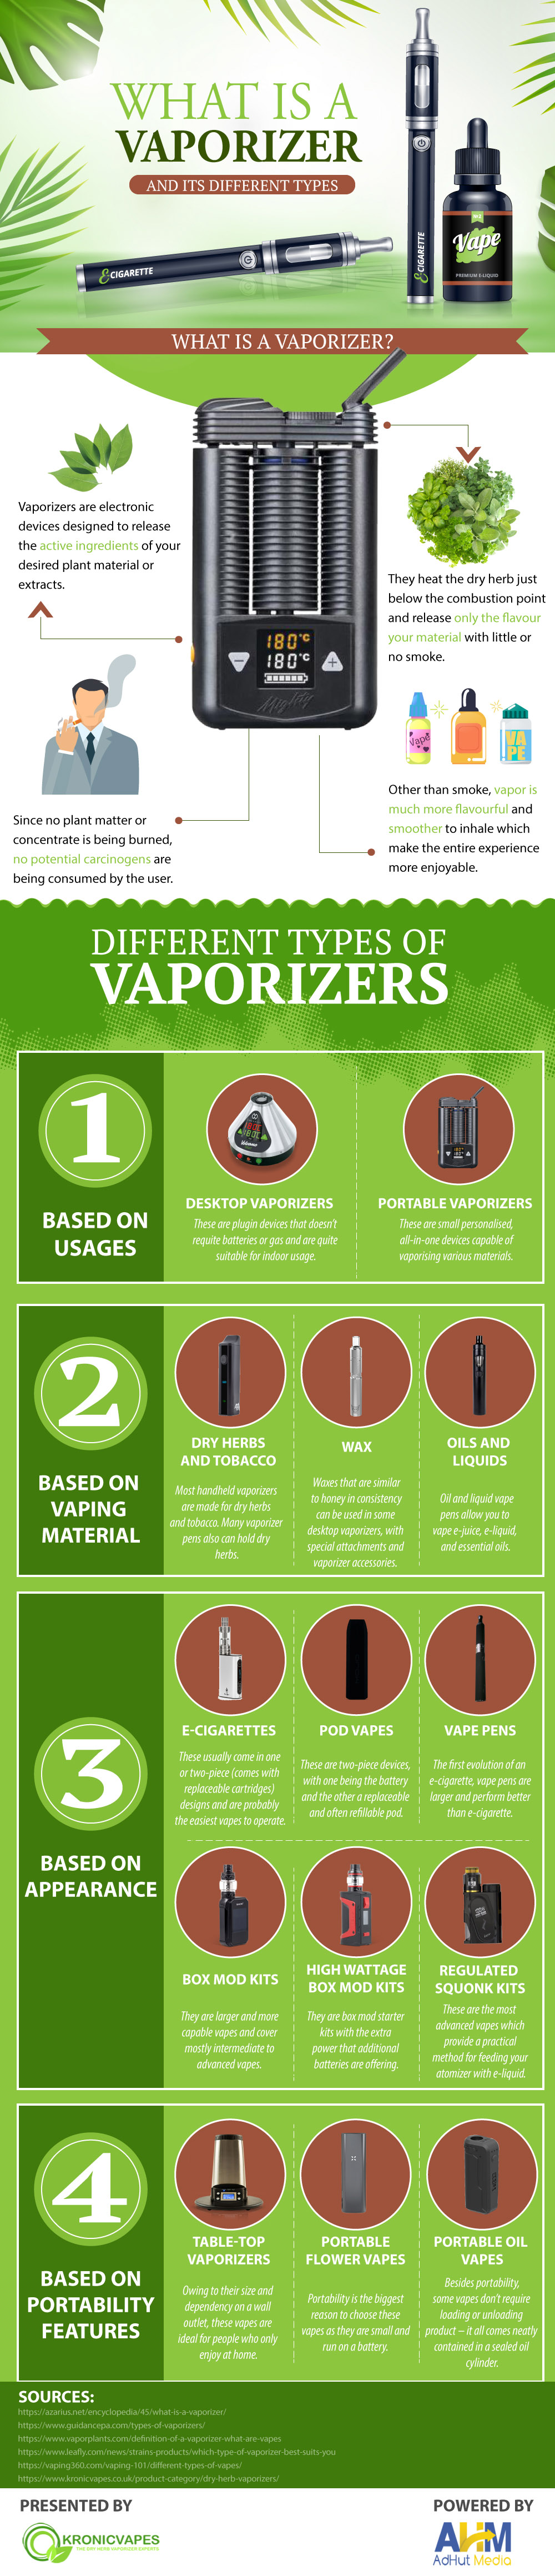 Understanding a Vaporizer and the Various Types Available